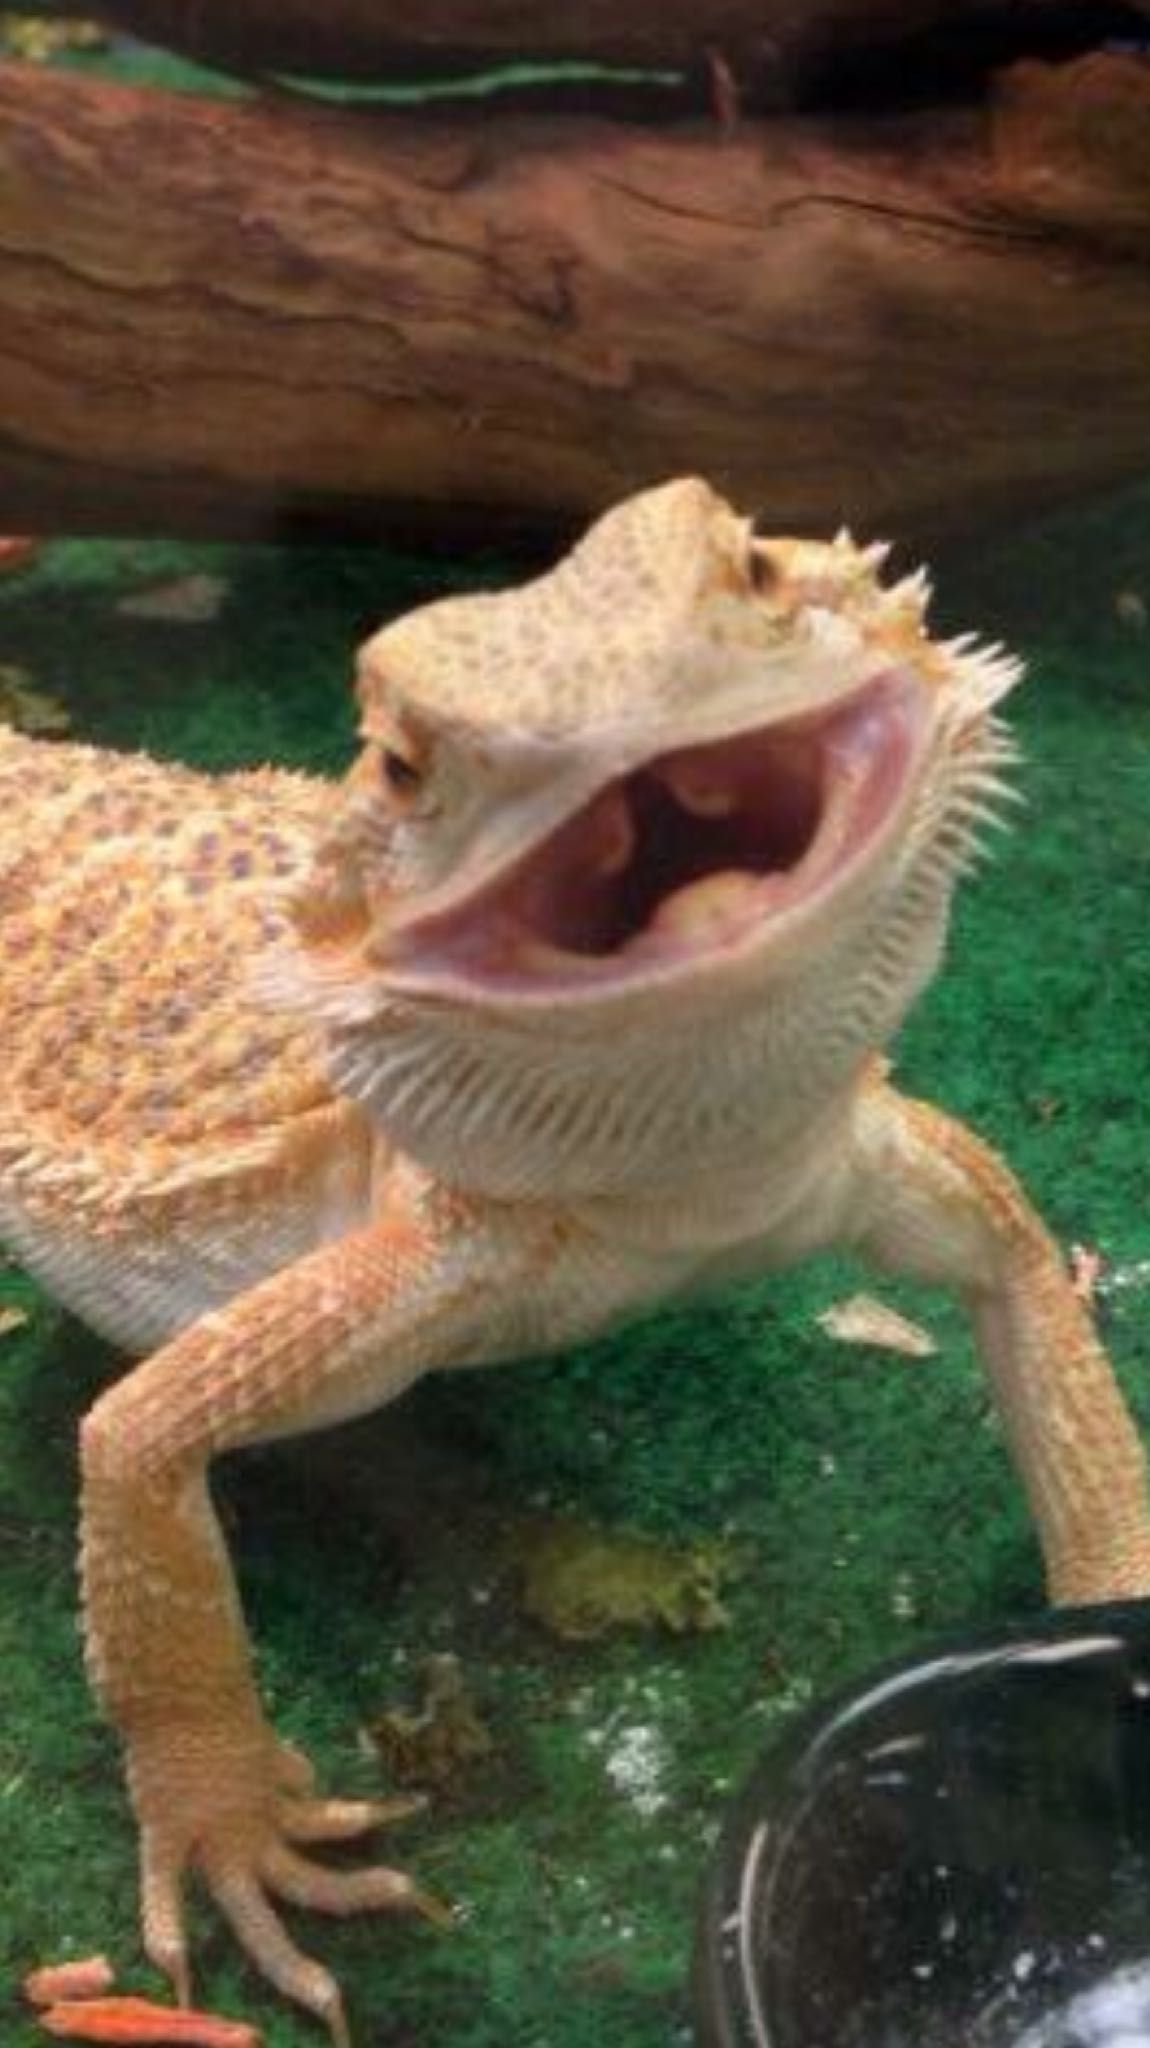 Jim Varney was the best (only) lizard I ever got to know